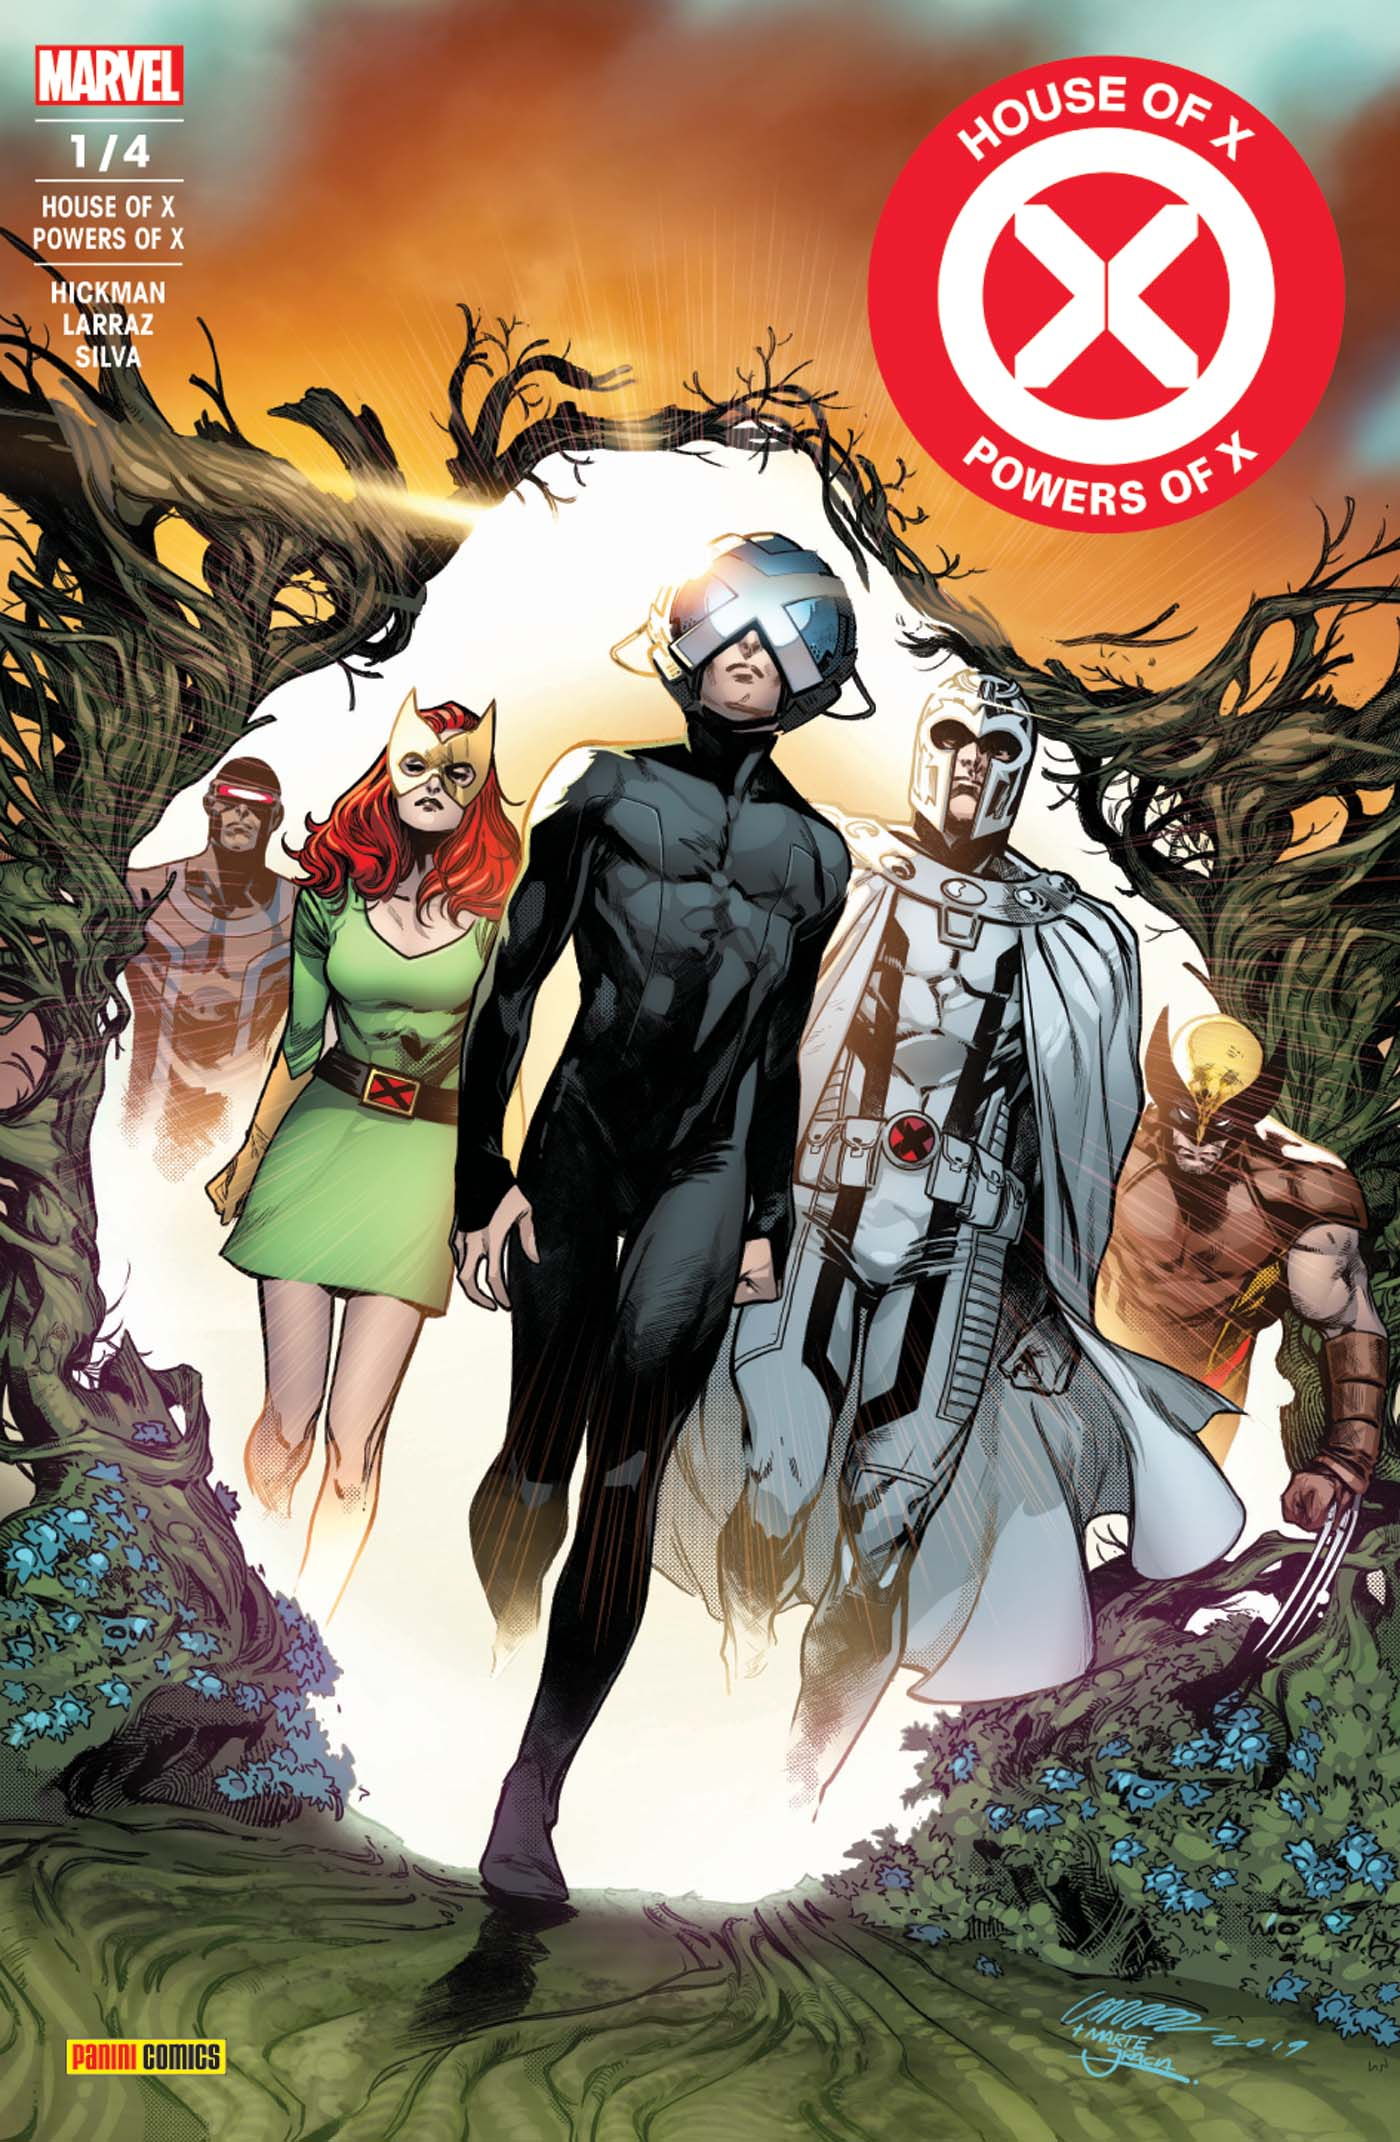 HOUSE OF X 1 (VF)